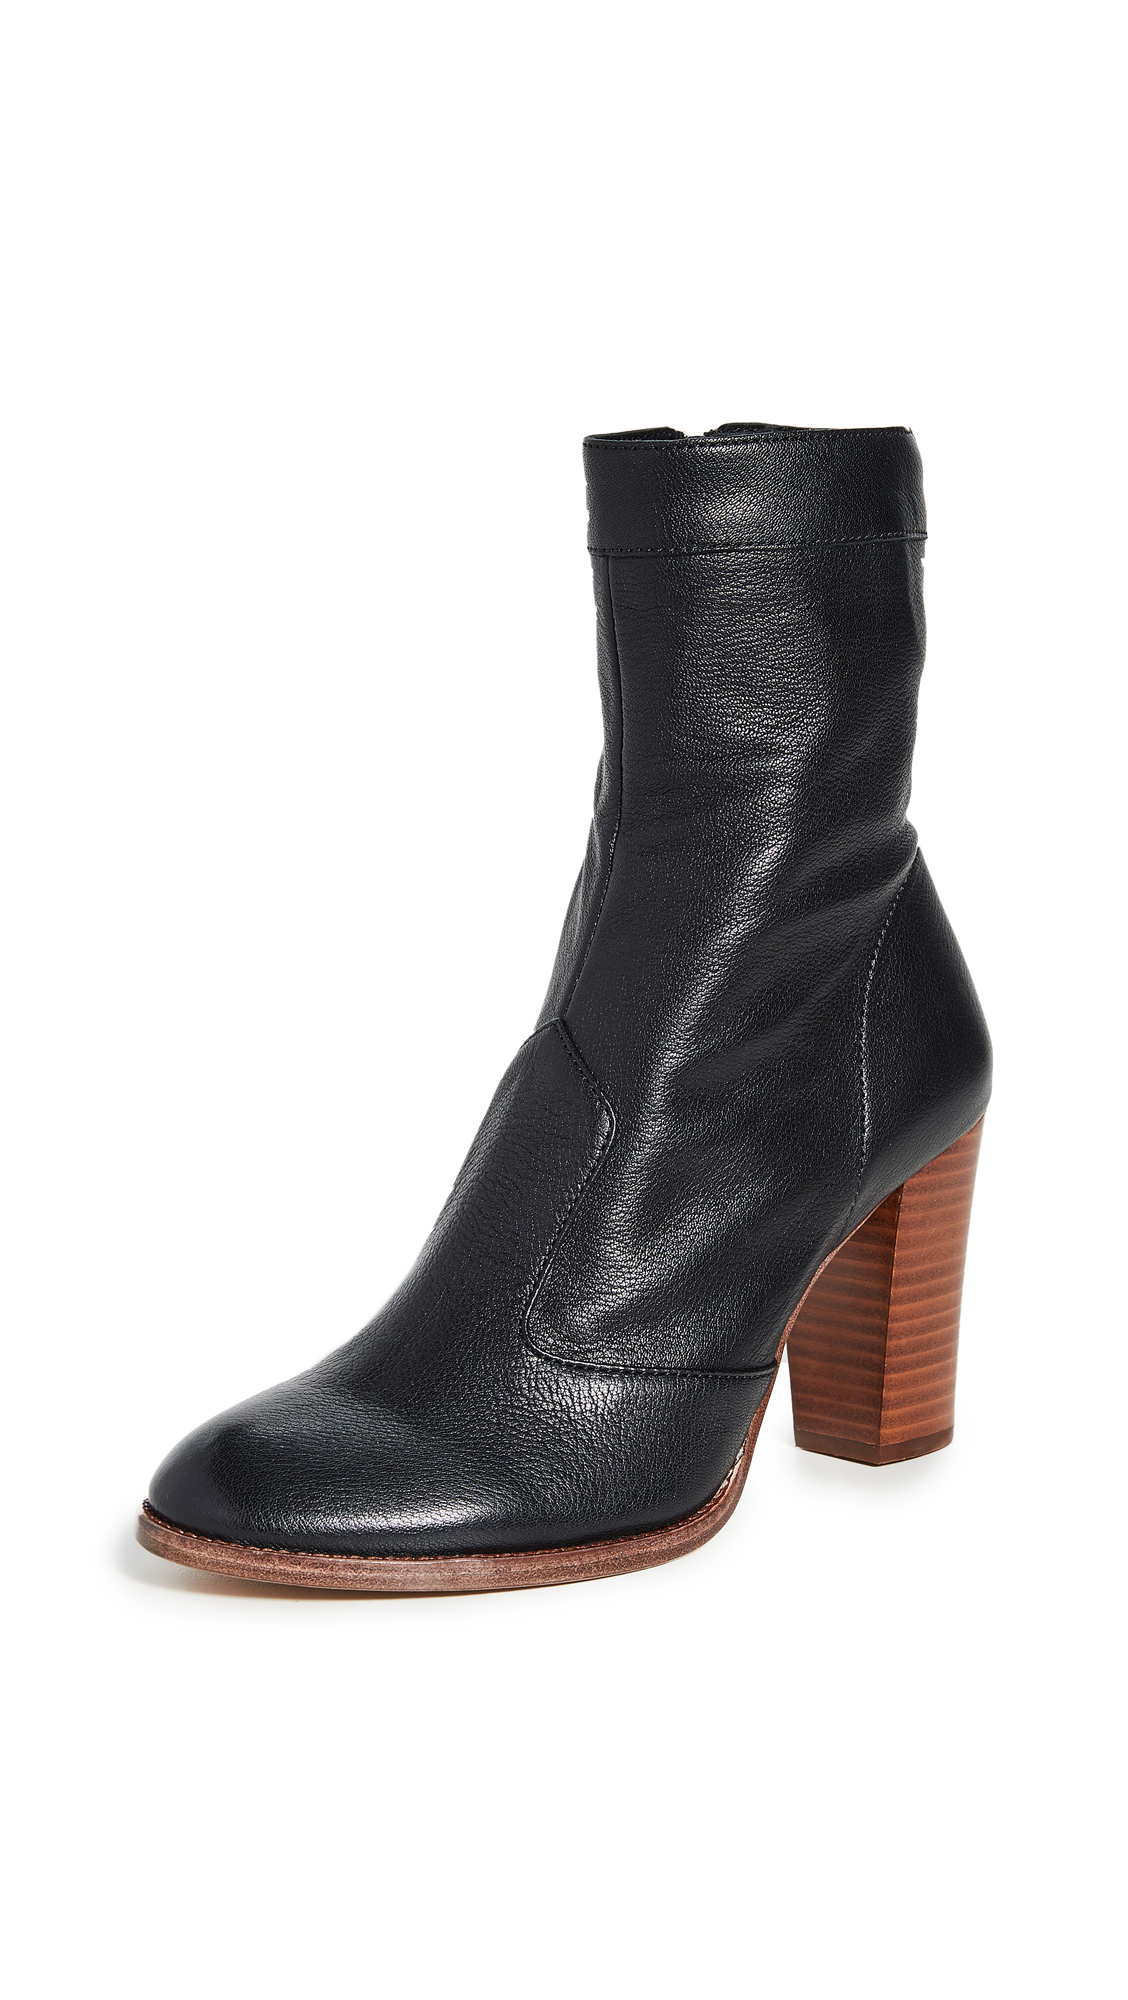 Marc Jacobs Sofia Loves The Ankle Boots